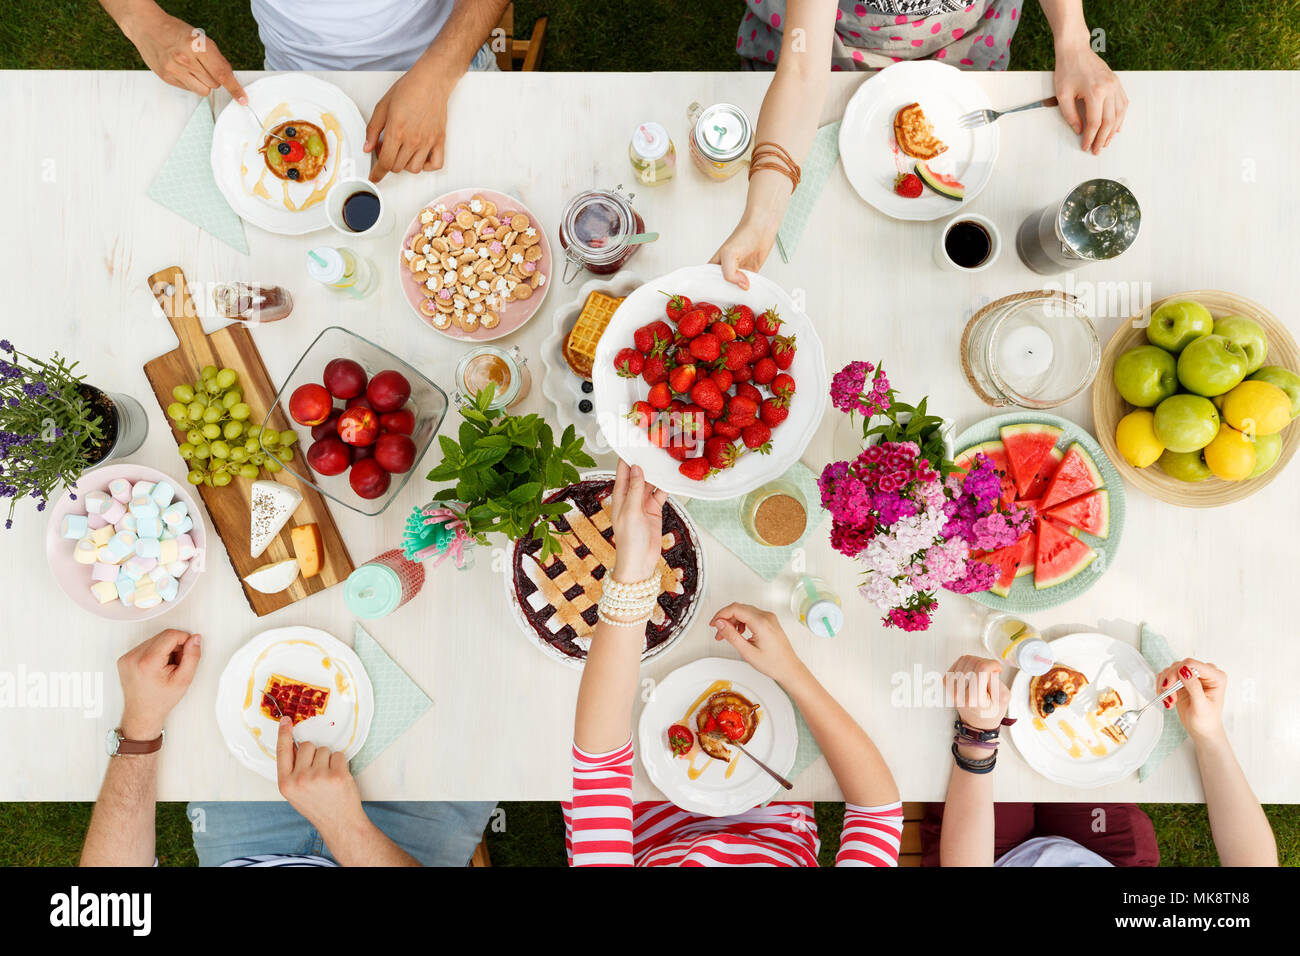 Multicultural group having a meal, sharing food in the garden outside on a sunny day - Stock Image